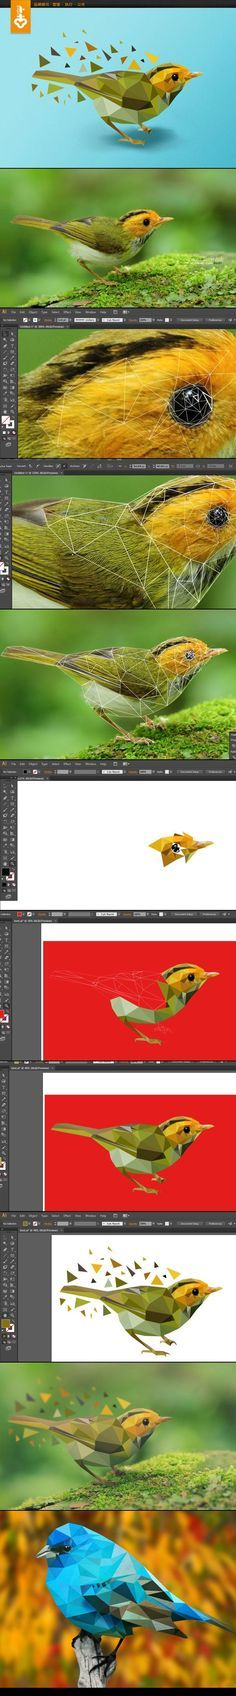 How to make polygon art from an image on Photoshop Graphisches Design, Graphic Design Tips, Graphic Design Inspiration, Graphic Art, Bird Design, Plakat Design, Affinity Photo, Geometric Art, Geometric Animal